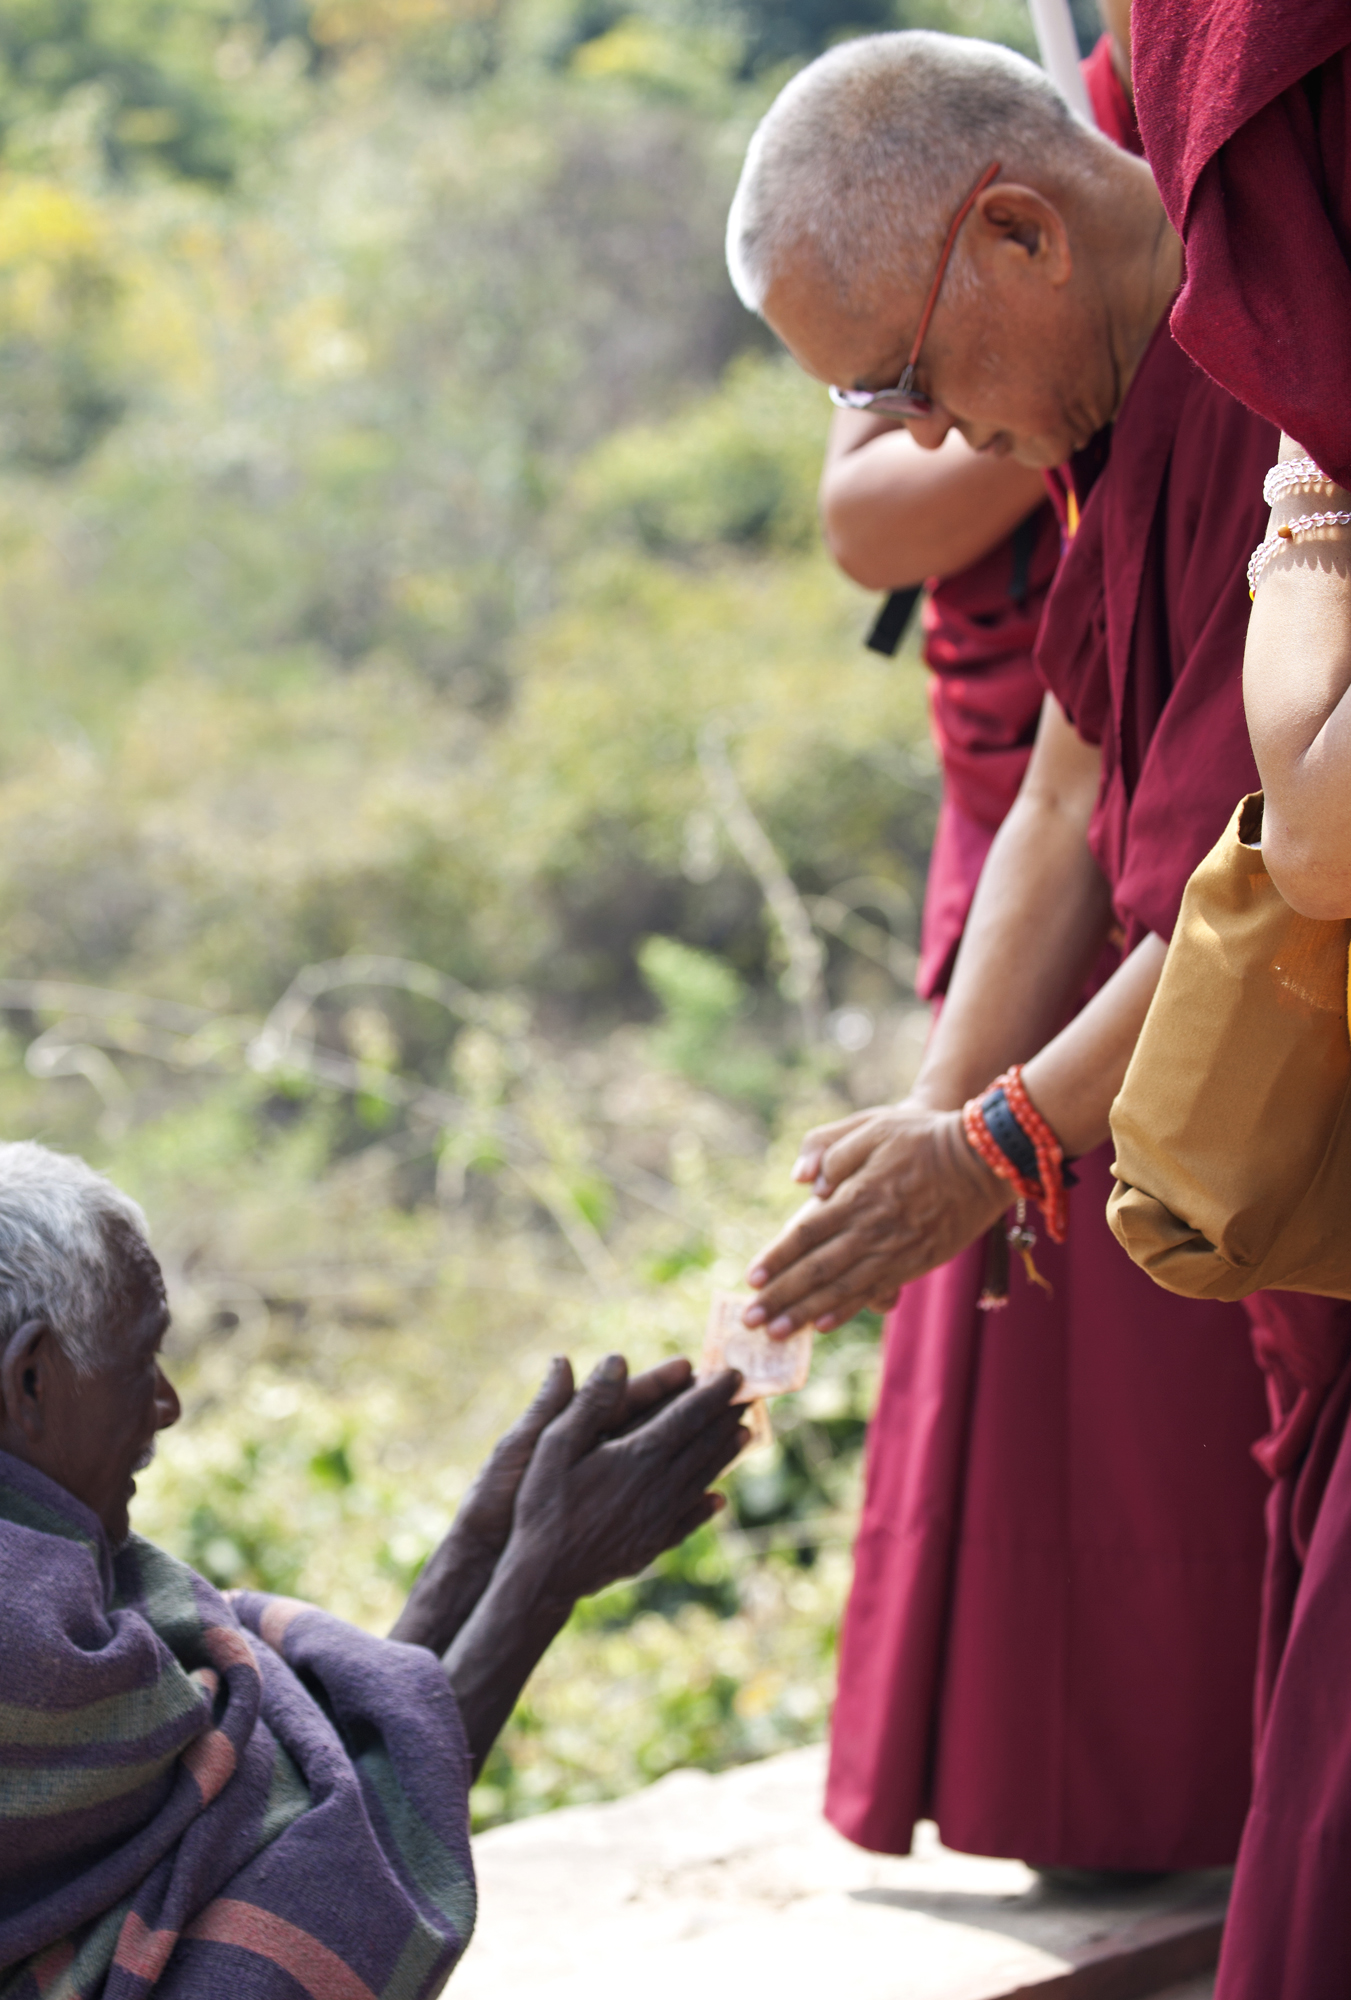 Lama Zopa Rinpoche respectfully offersto a beggar on the way up to Vulture's Peak, Rajghir, March 2014. (Photo Andy Melnic)